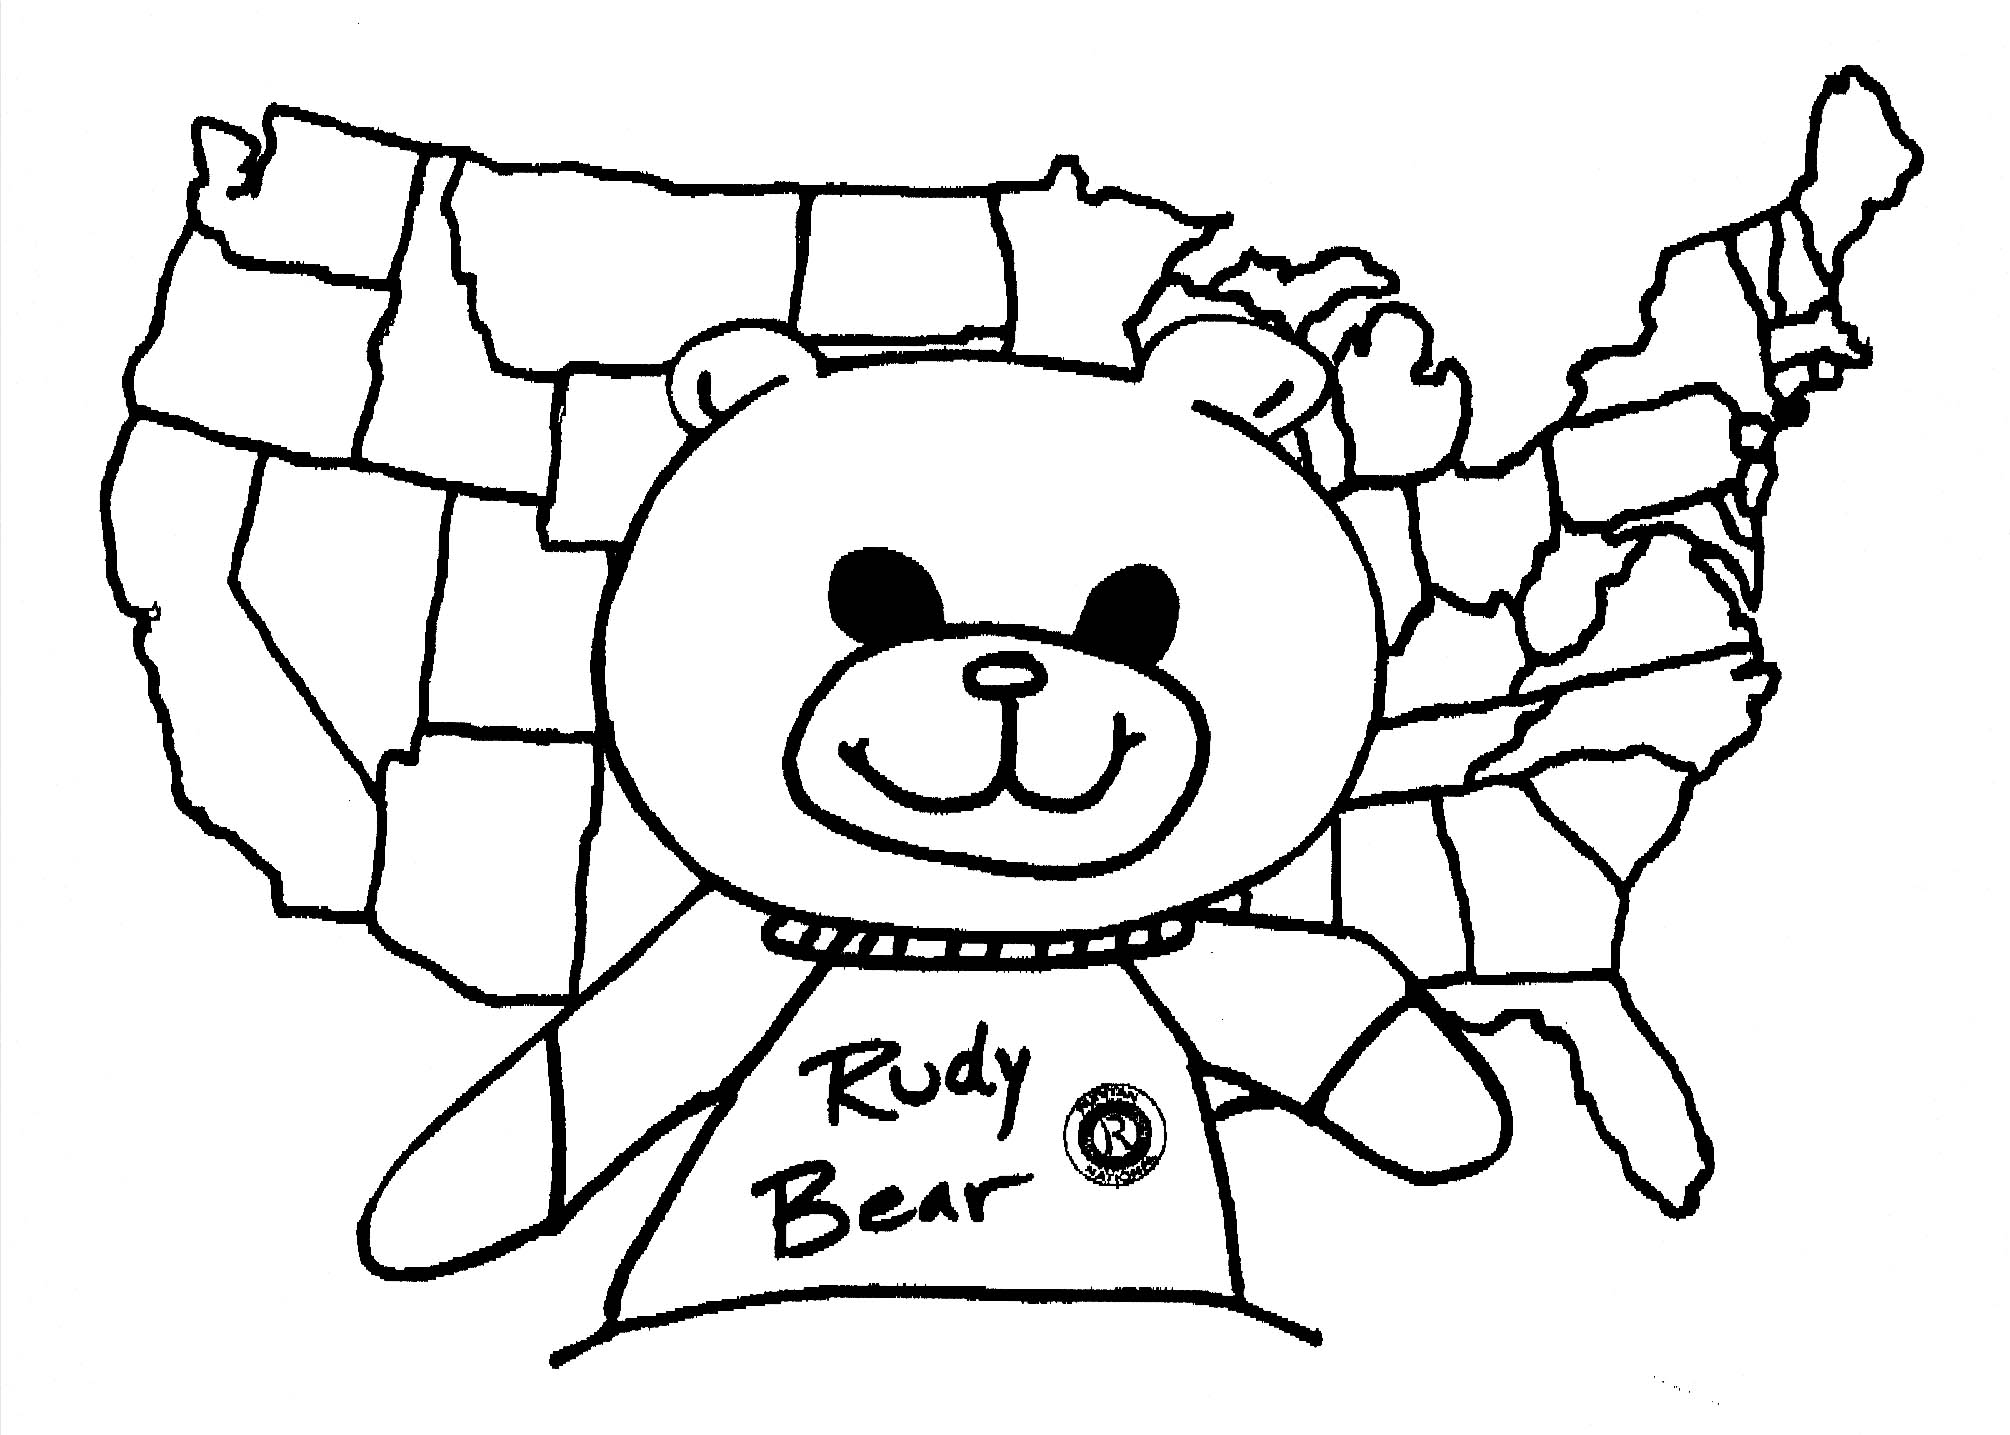 Rudy and his country (jpeg picture)